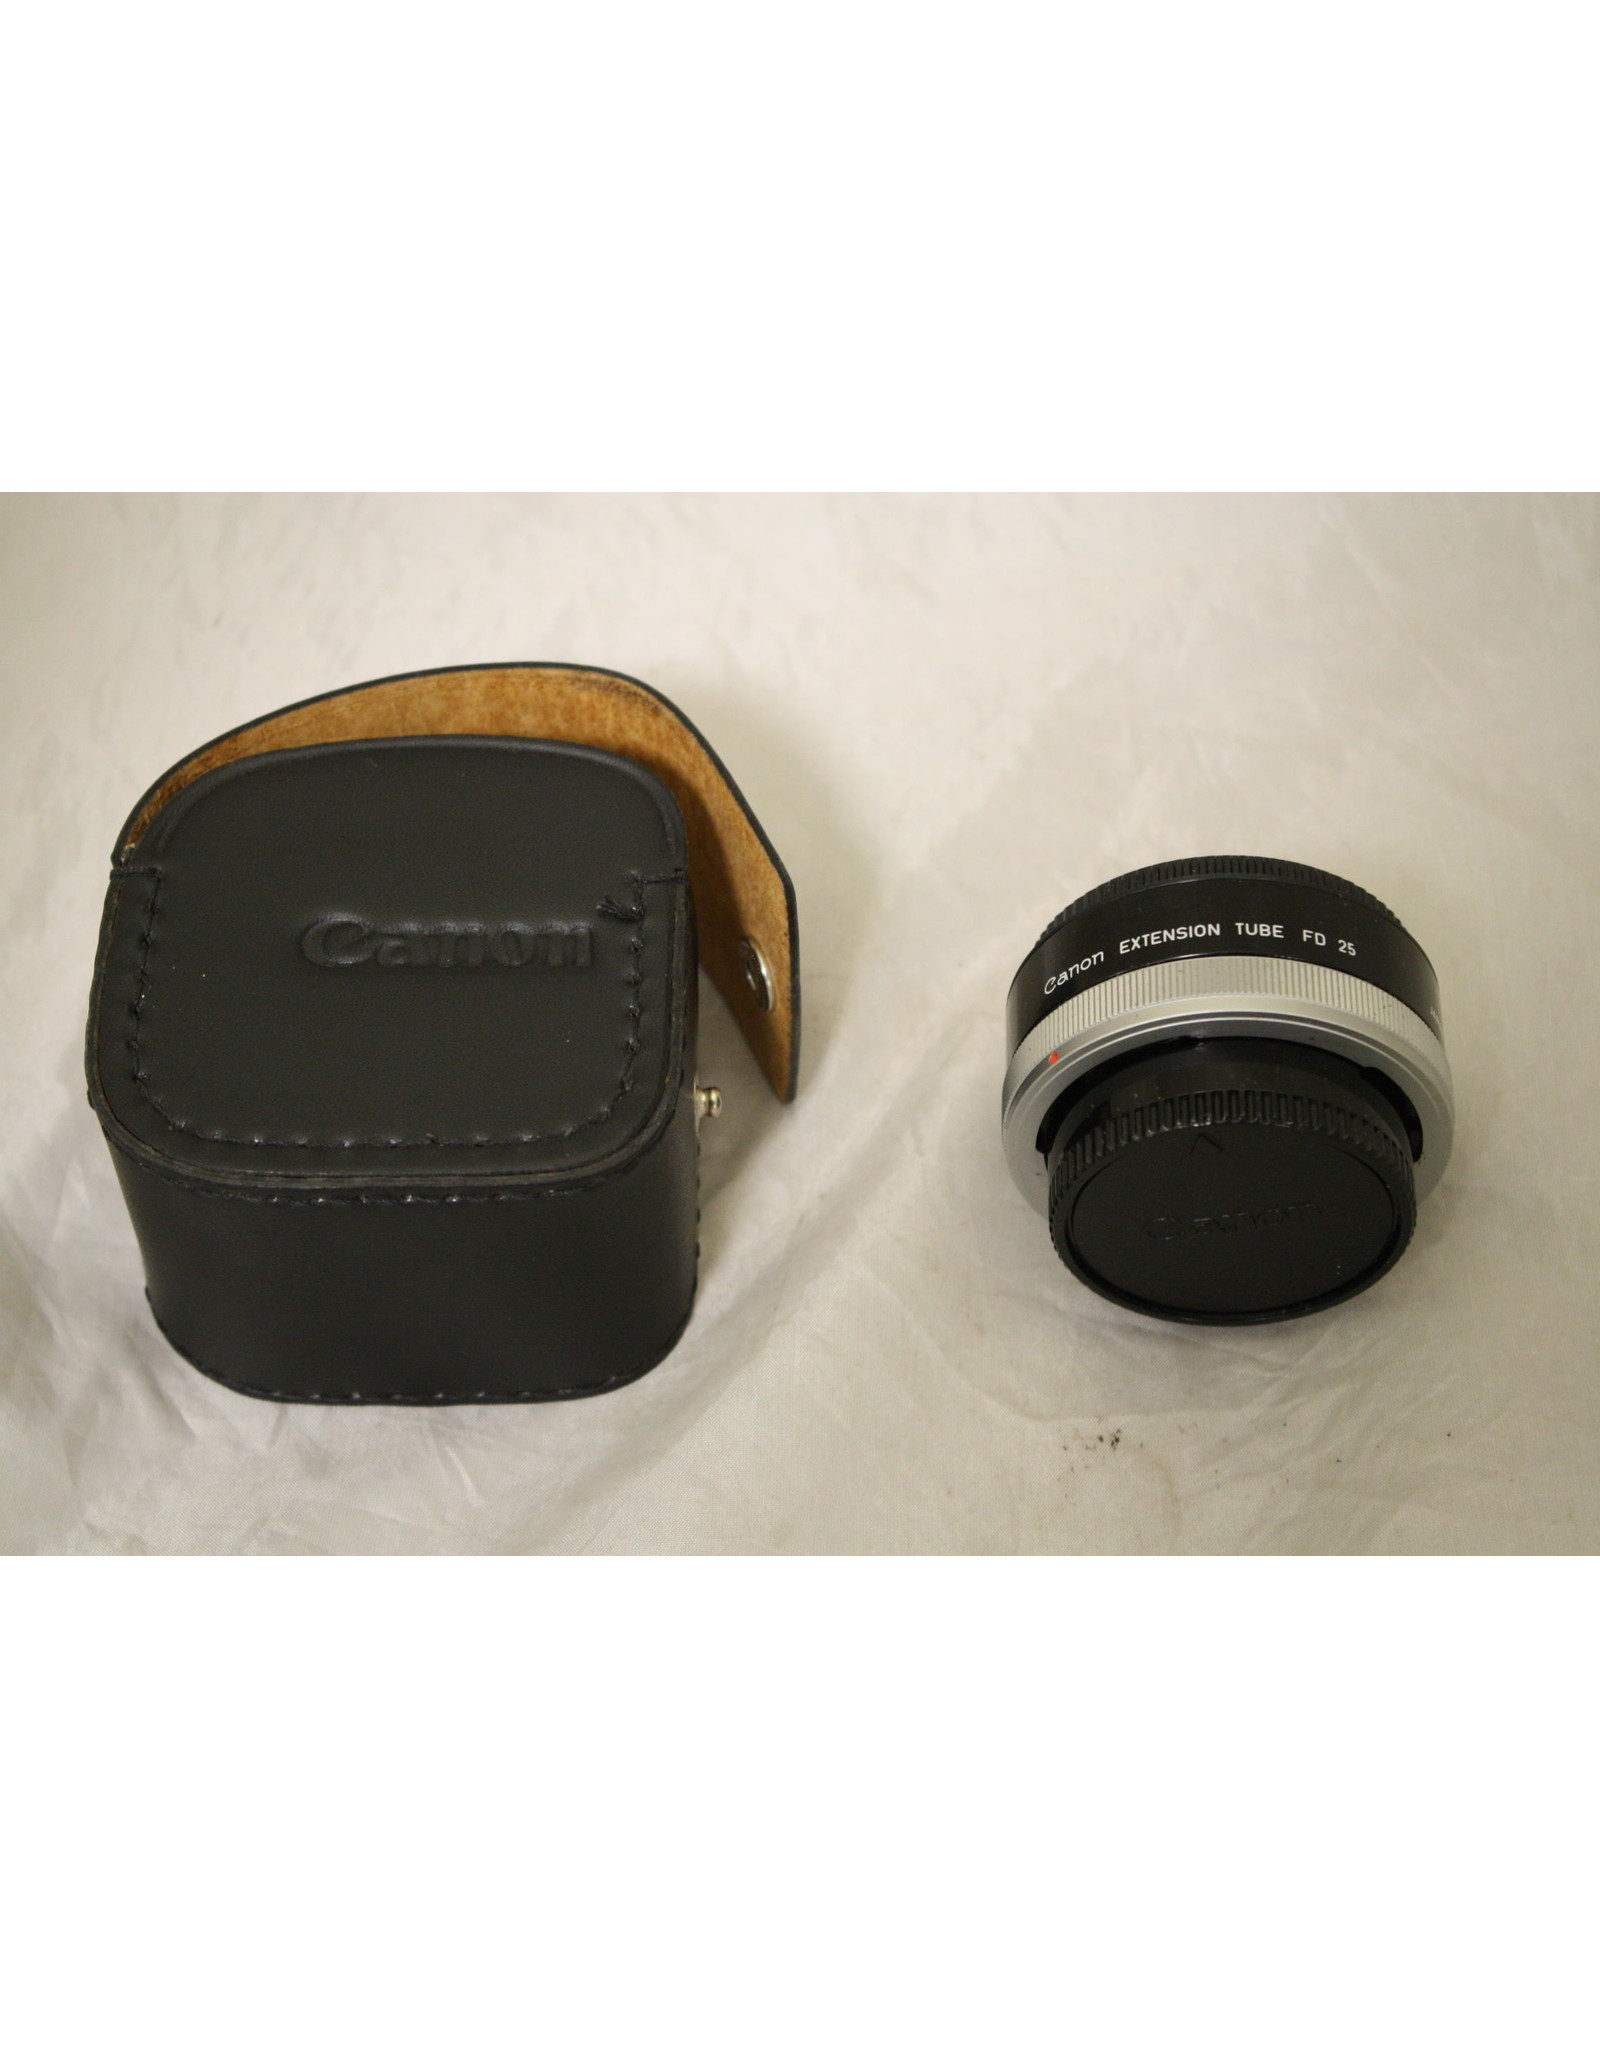 Canon Canon Extension Tube FD 25 with Case